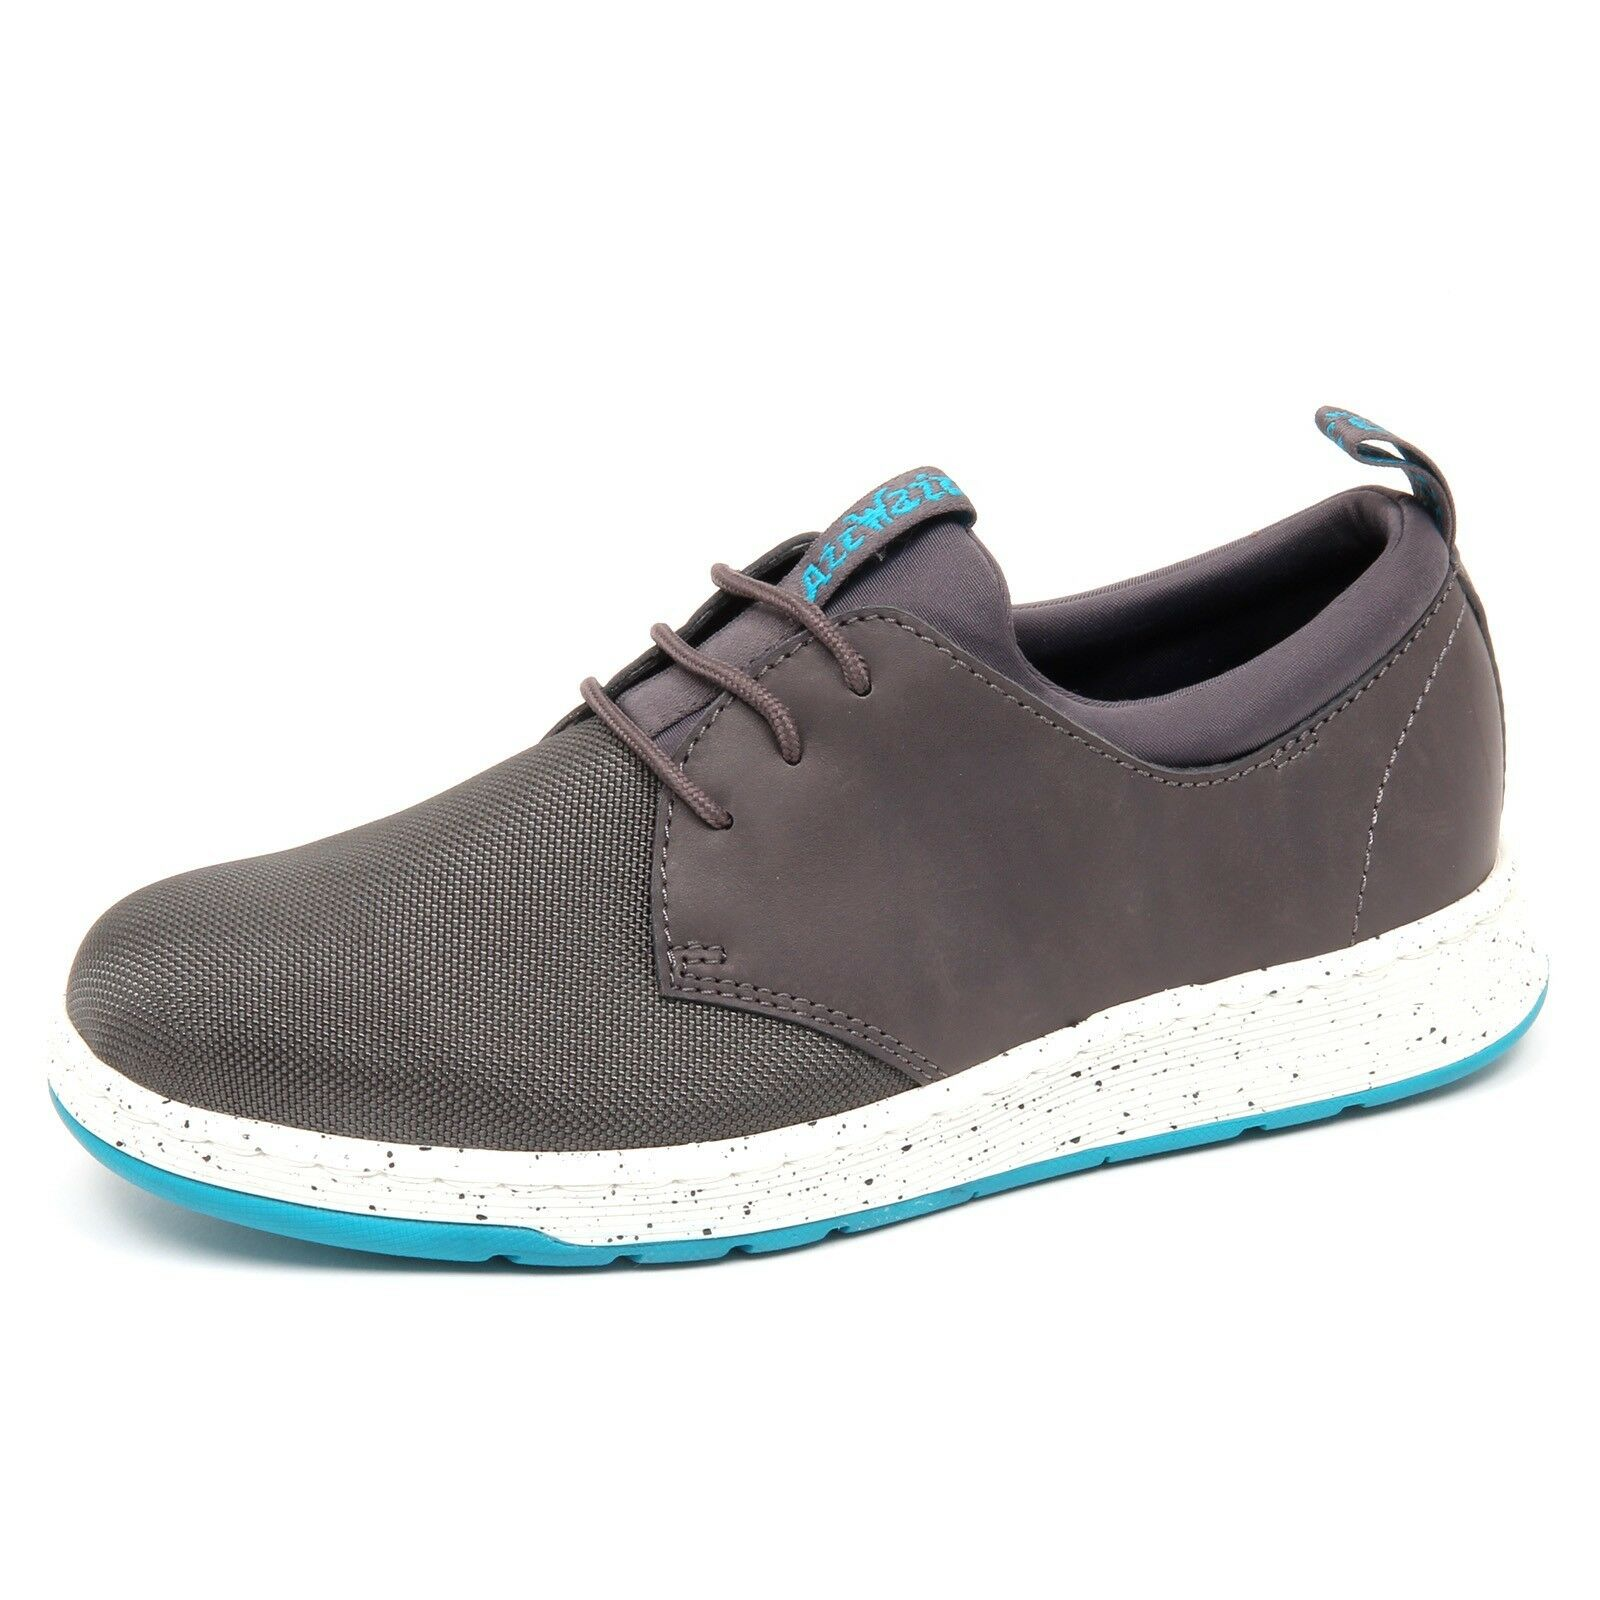 D7414 (without box) sneaker uomo grey leather/tissue DR. MARTENS shoe man